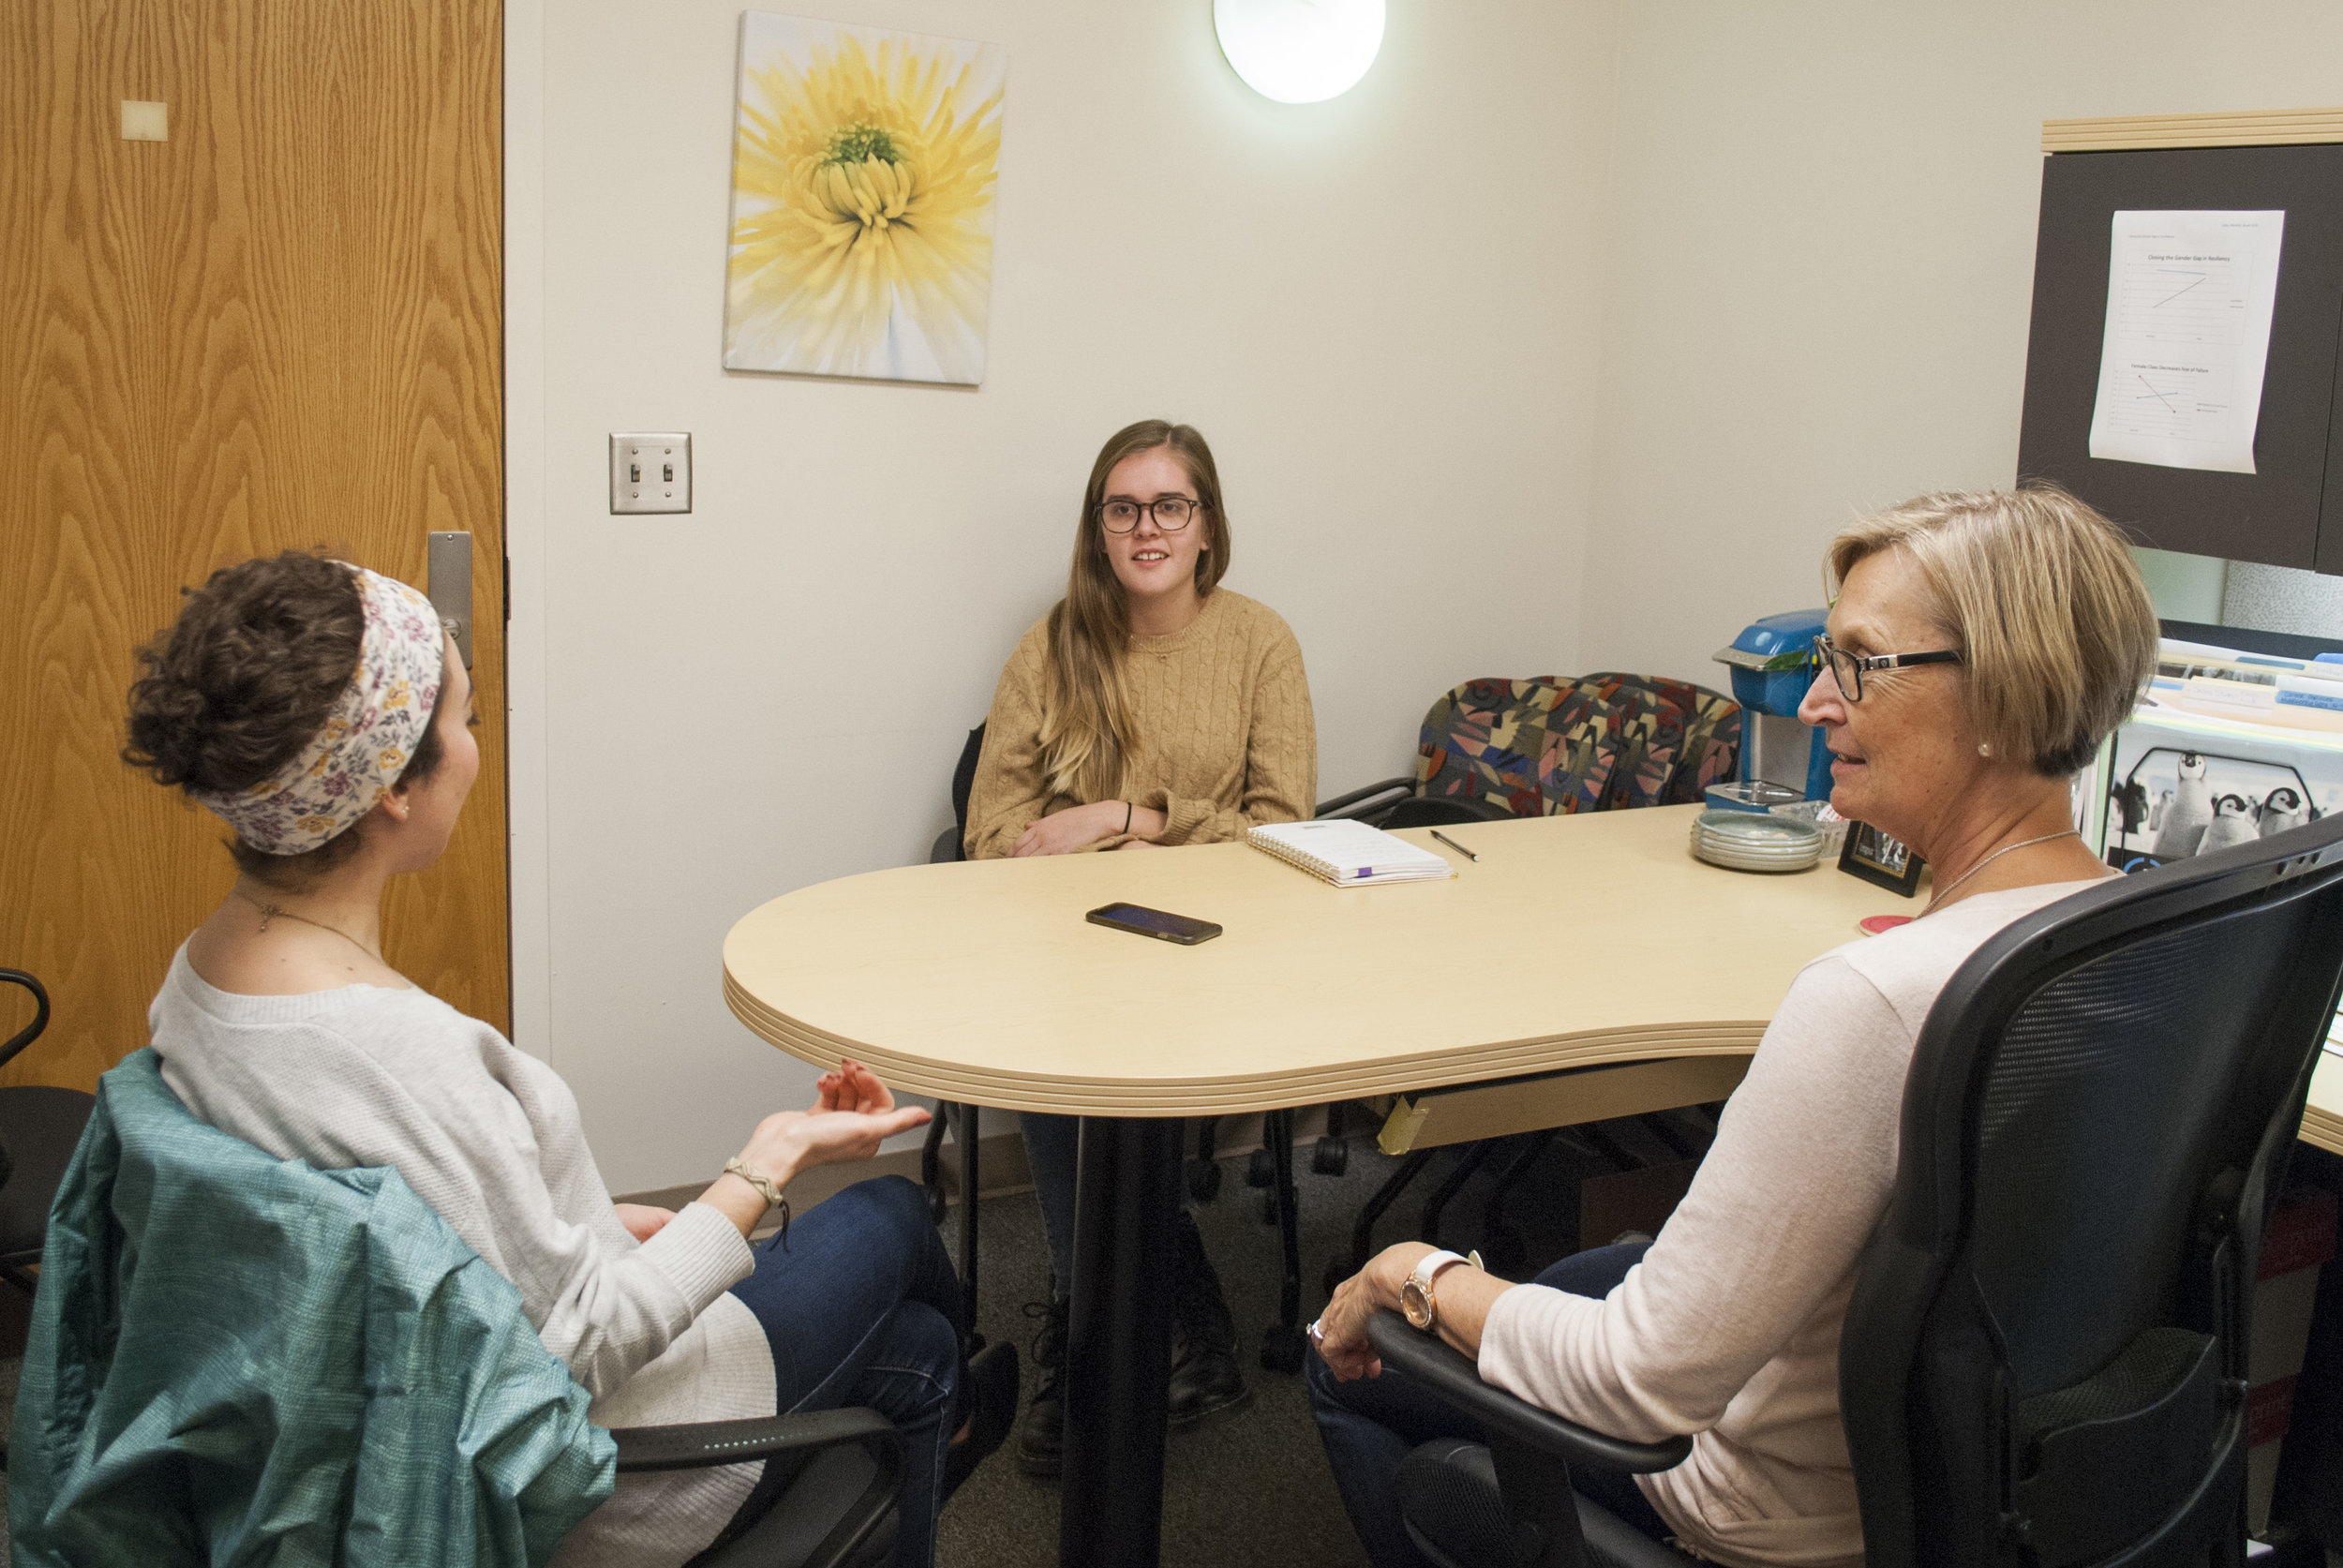 Conducting an interview for my ending project with UC Master's student, Hannah, and professor Dr. Sojka on the importance of mentorship among college women and the impacts it has.  December 2017 .